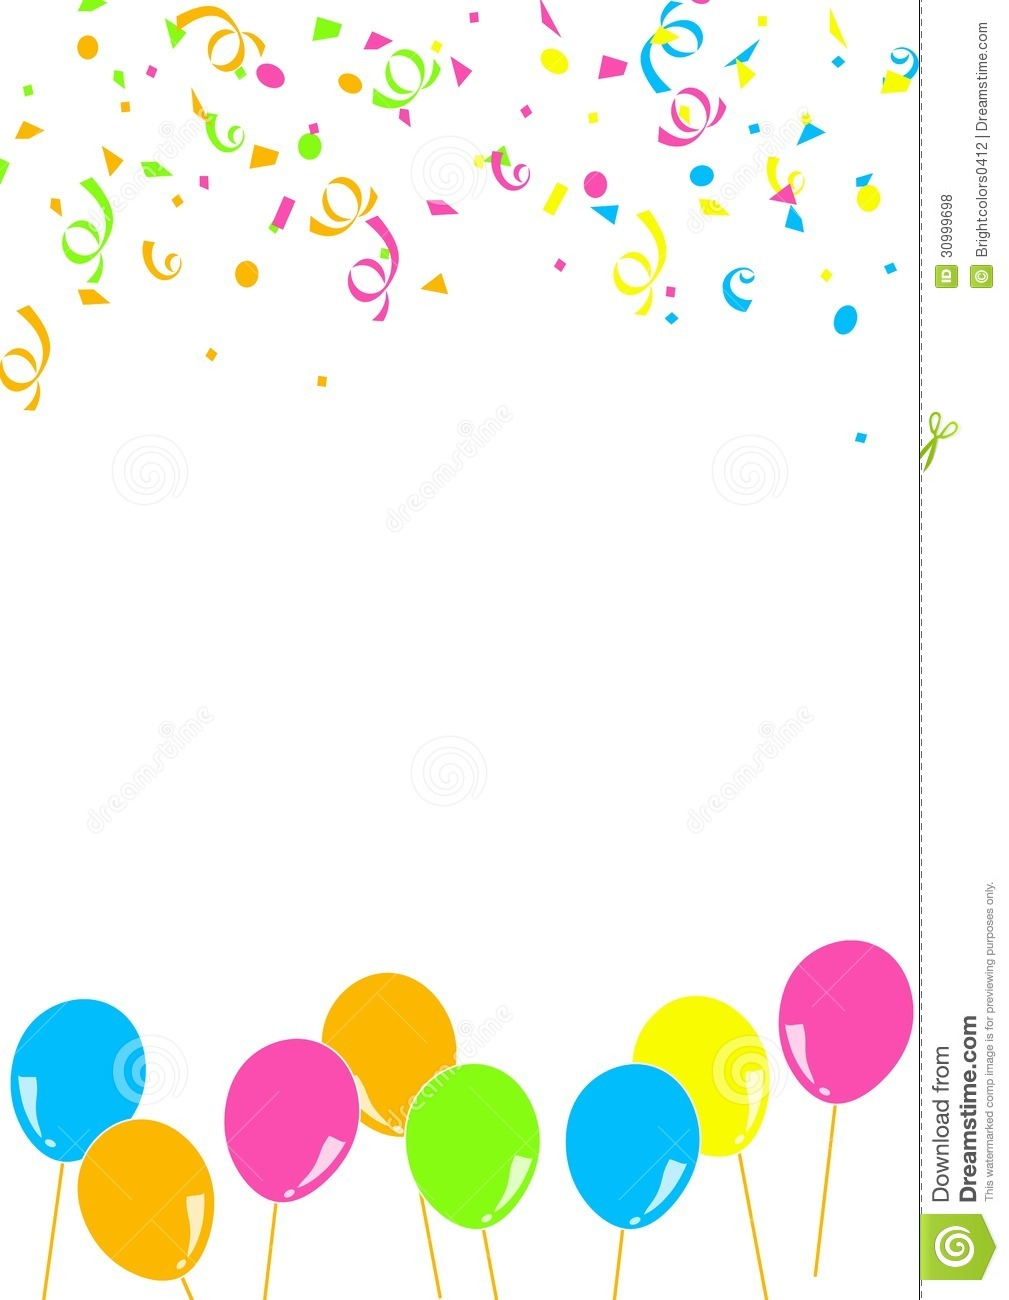 Party background clipart clip art royalty free library Dance Party Background | Clipart Panda - Free Clipart Images clip art royalty free library